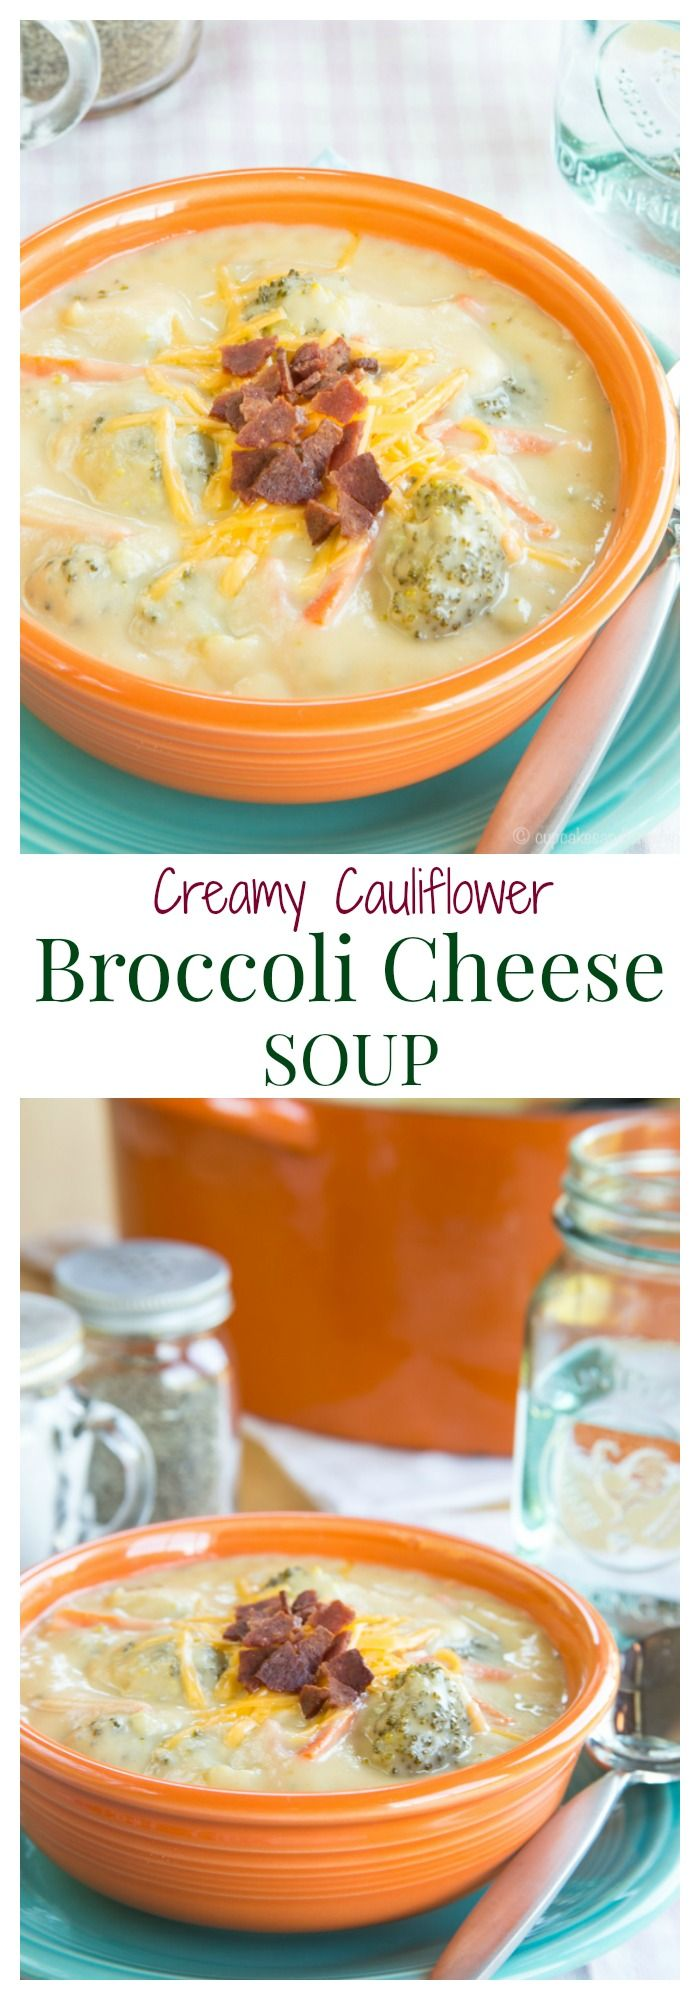 Creamy Cauliflower Broccoli Cheese Soup - a healthier and veggie-packed version of a favorite comfort food recipe for #SundaySupper | cupcakesandkalechips.com | gluten free, low carb, vegetarian (without the bacon garnish)